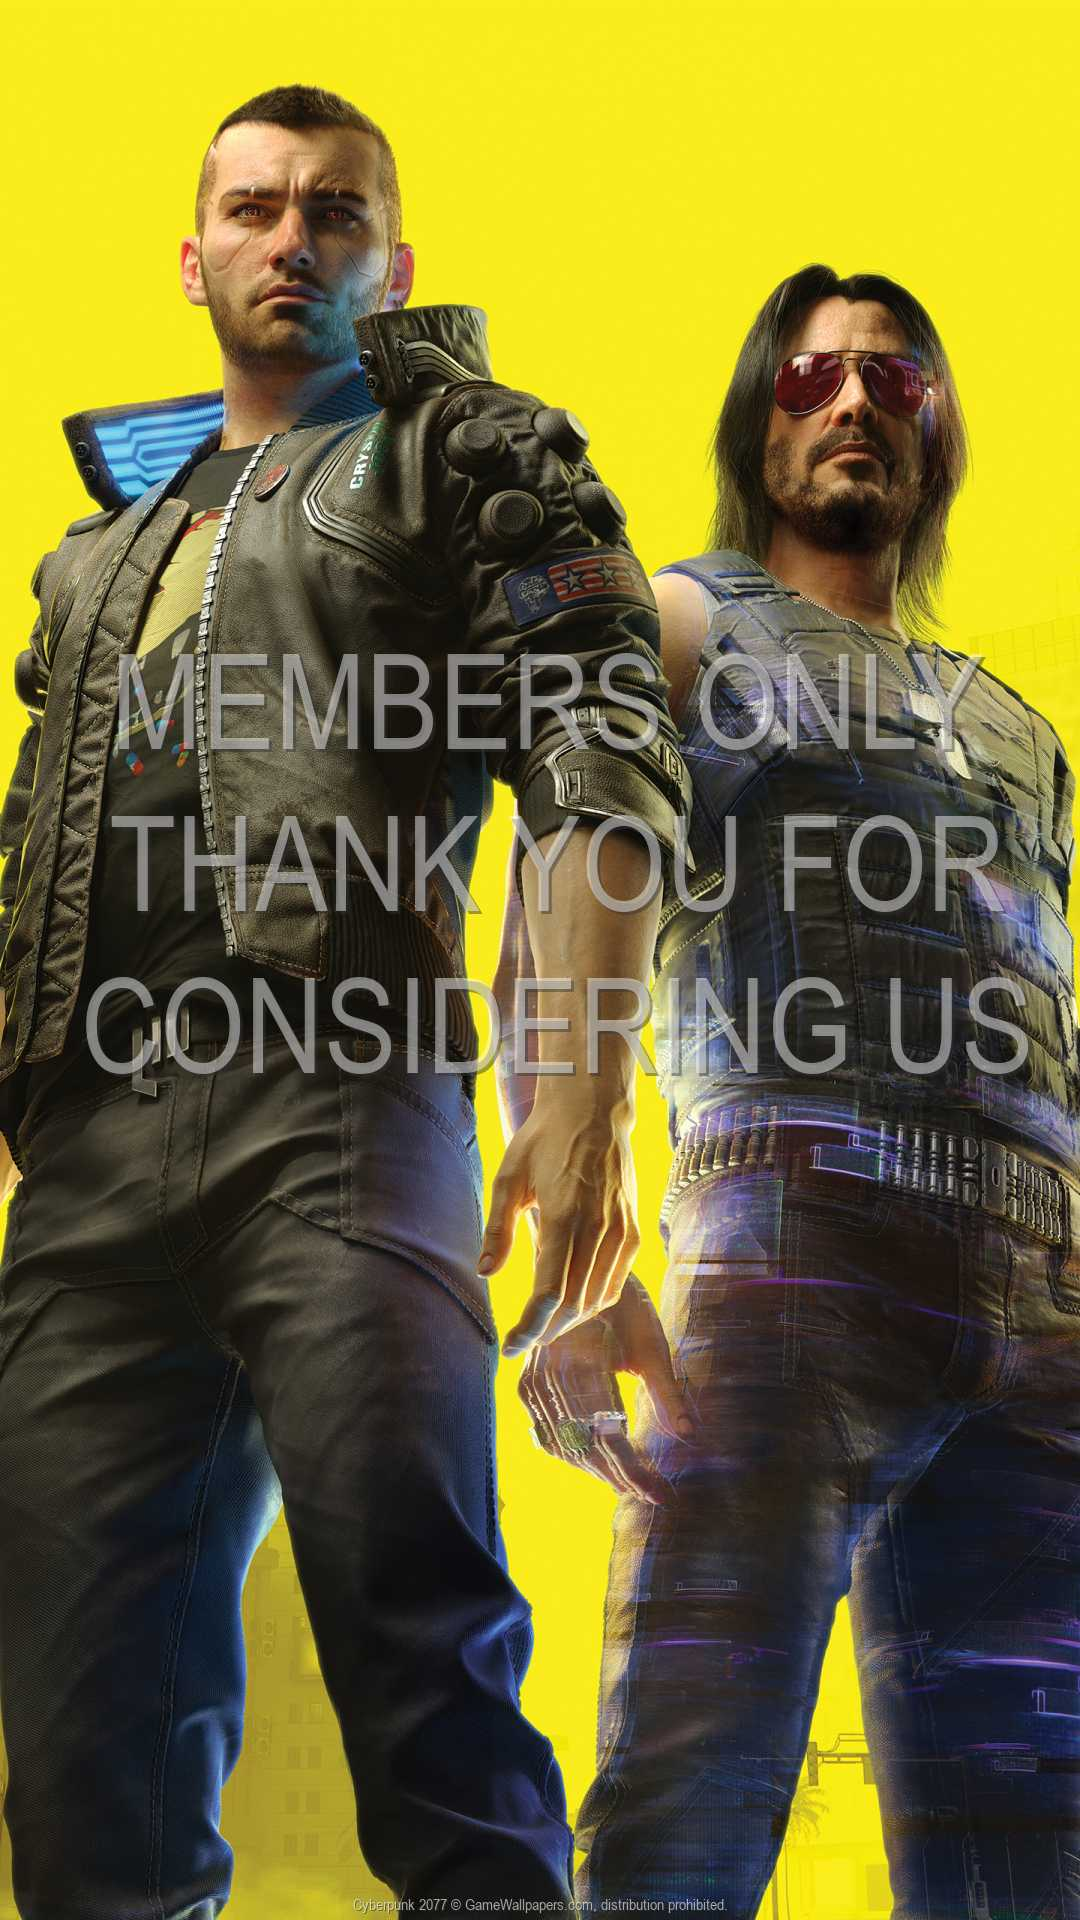 Cyberpunk 2077 1080p Vertical Mobile wallpaper or background 46